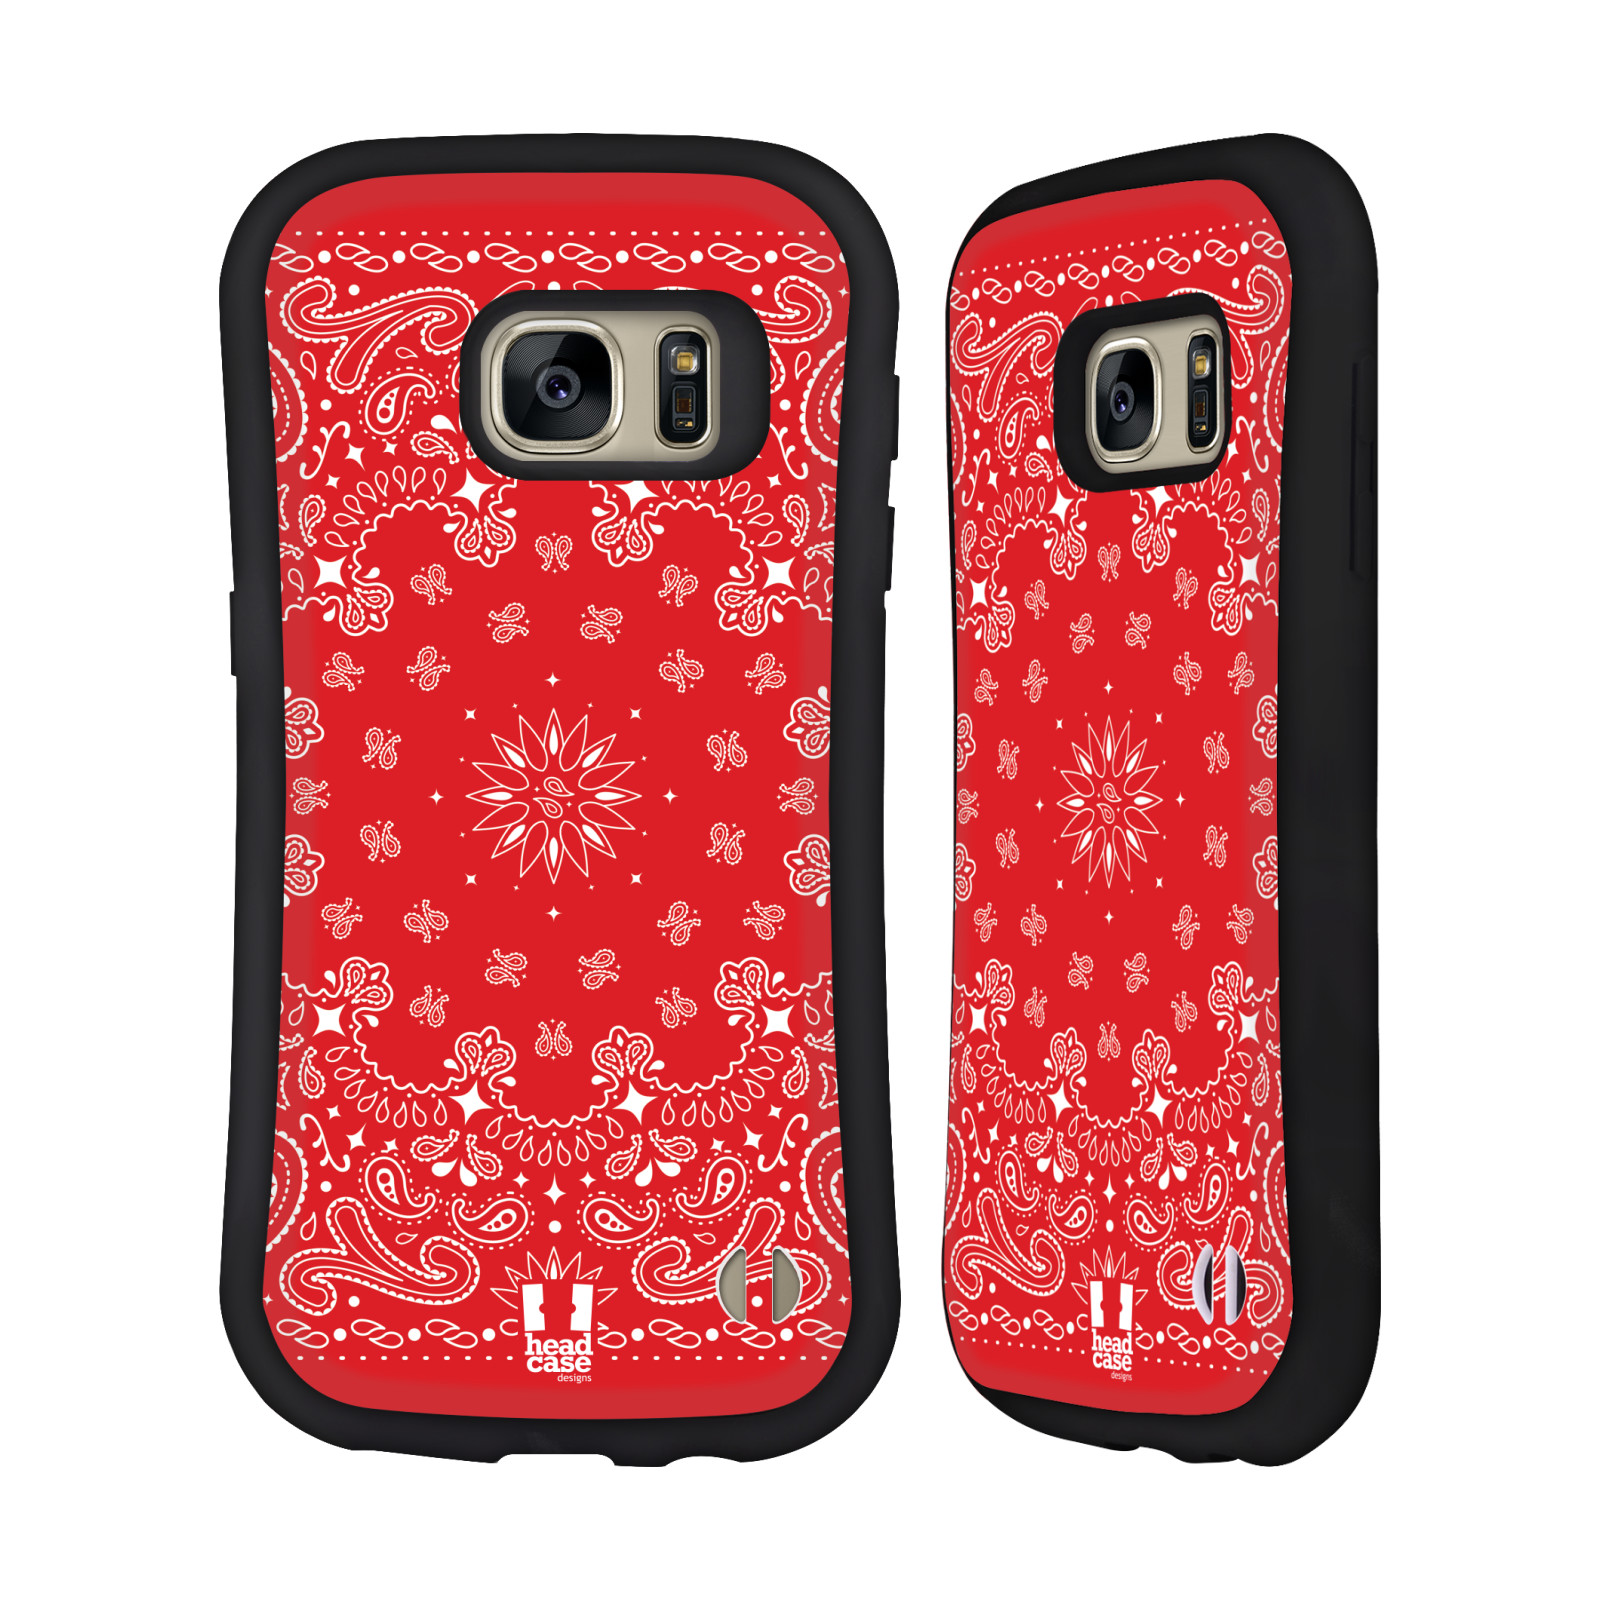 HEAD CASE DESIGNS CLASSIC PAISLEY BANDANA HYBRID CASE FOR SAMSUNG PHONES